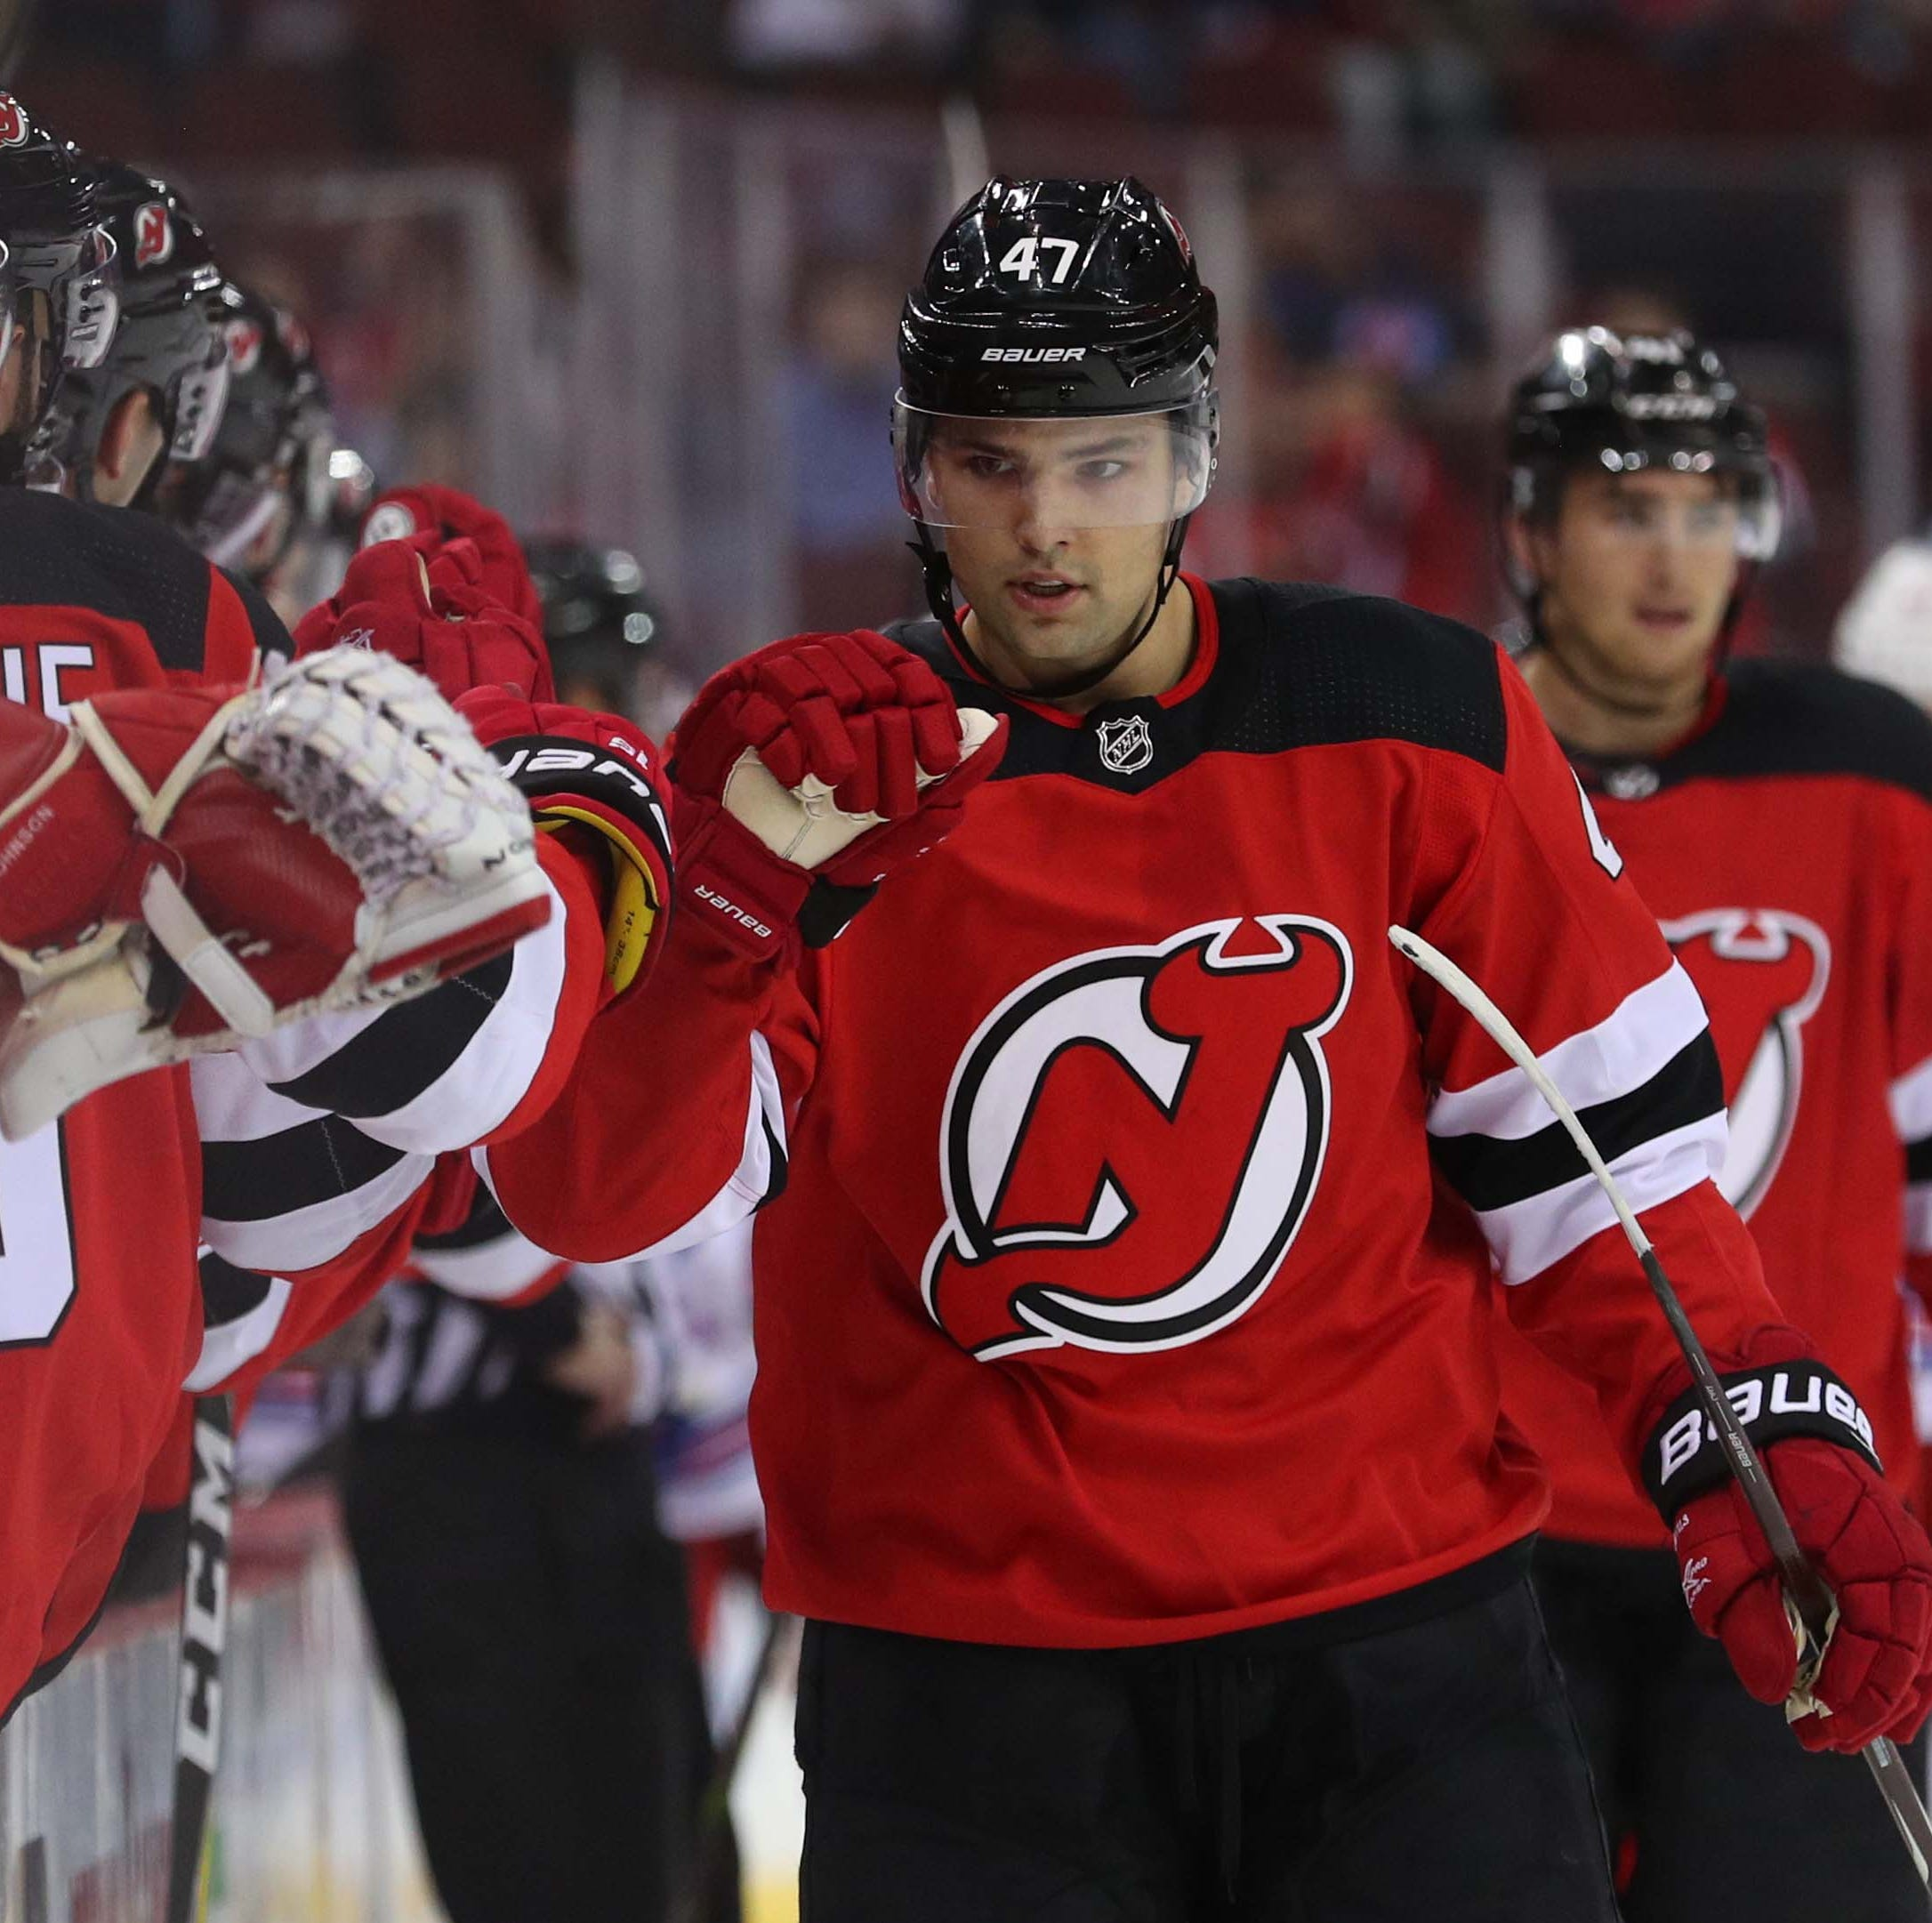 Takeaways from NJ Devils preseason loss to NY Rangers